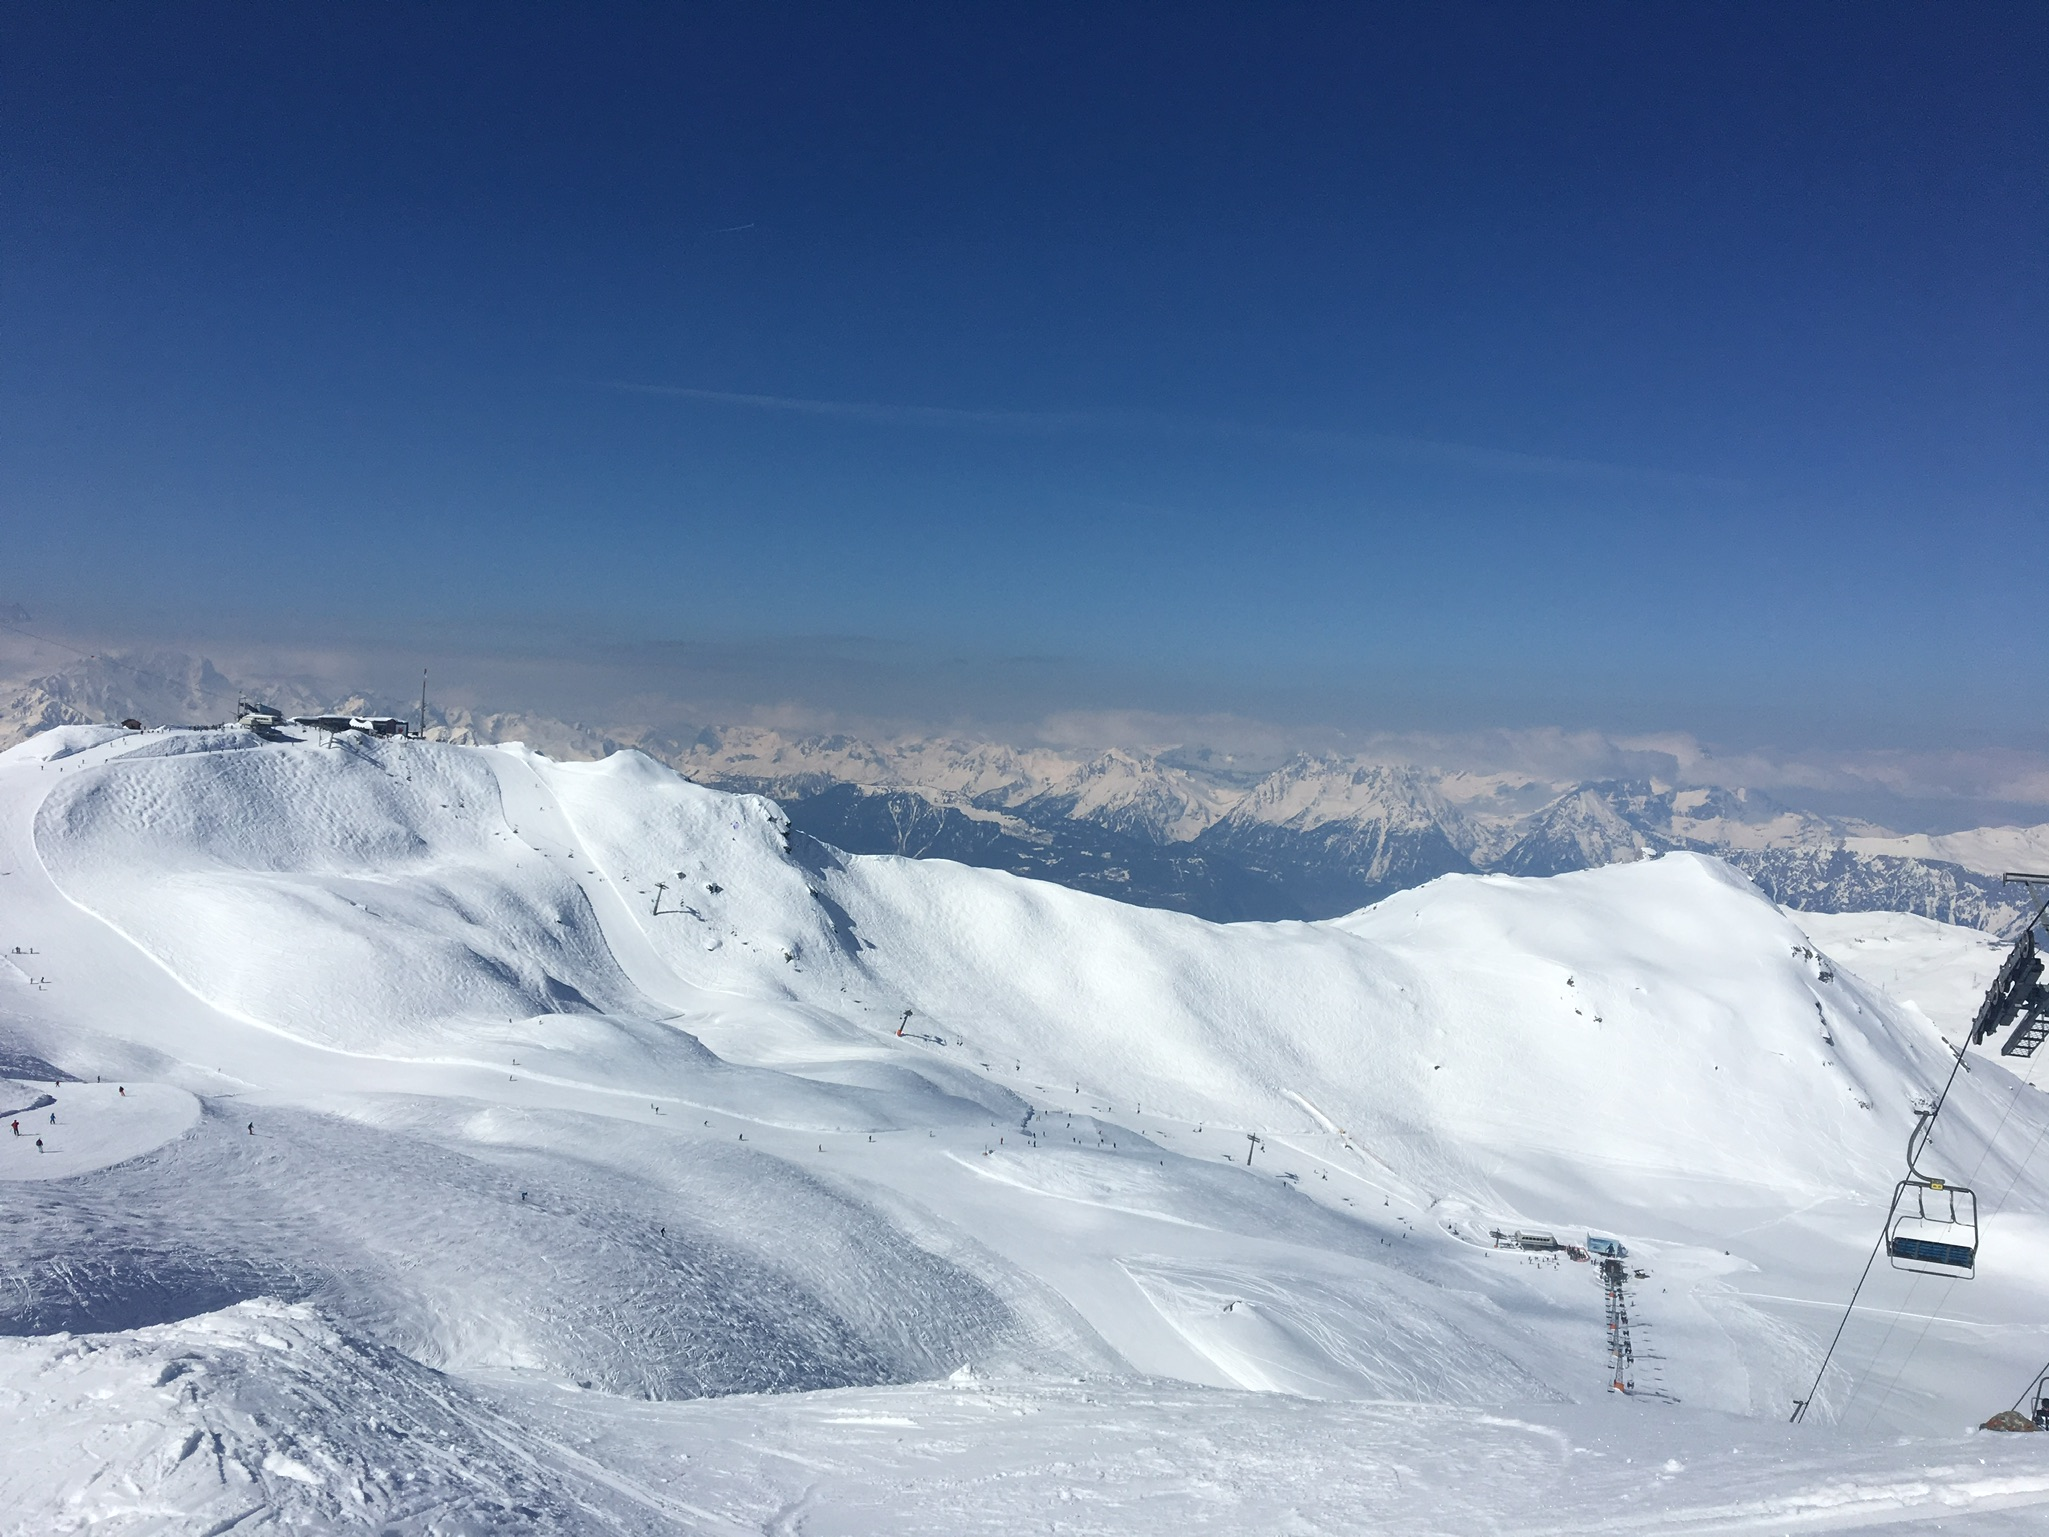 Verbier, 4 Valleys